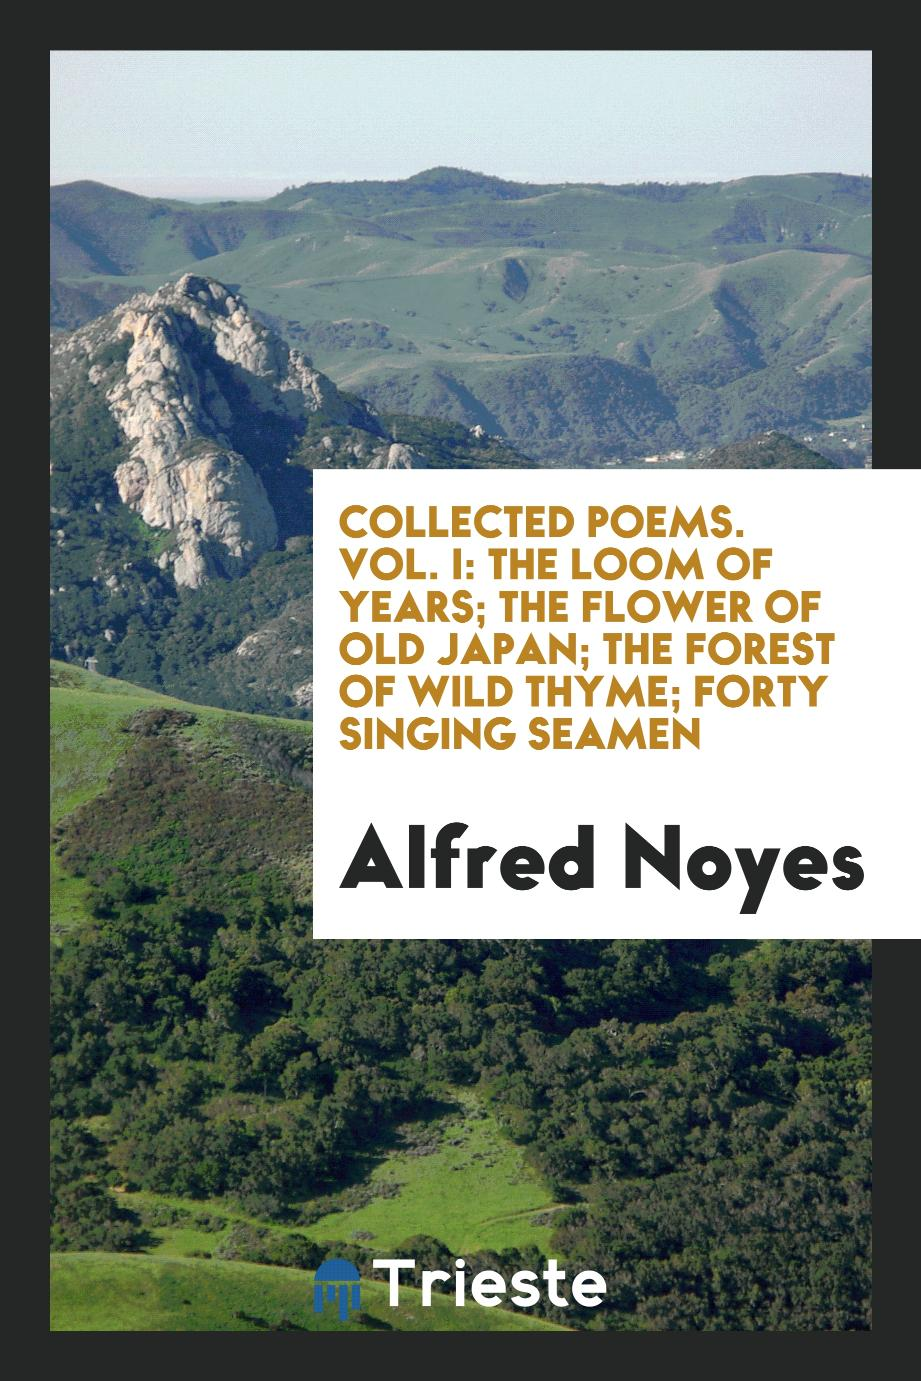 Collected Poems. Vol. I: The Loom of Years; The Flower of Old Japan; The Forest of Wild Thyme; Forty Singing Seamen